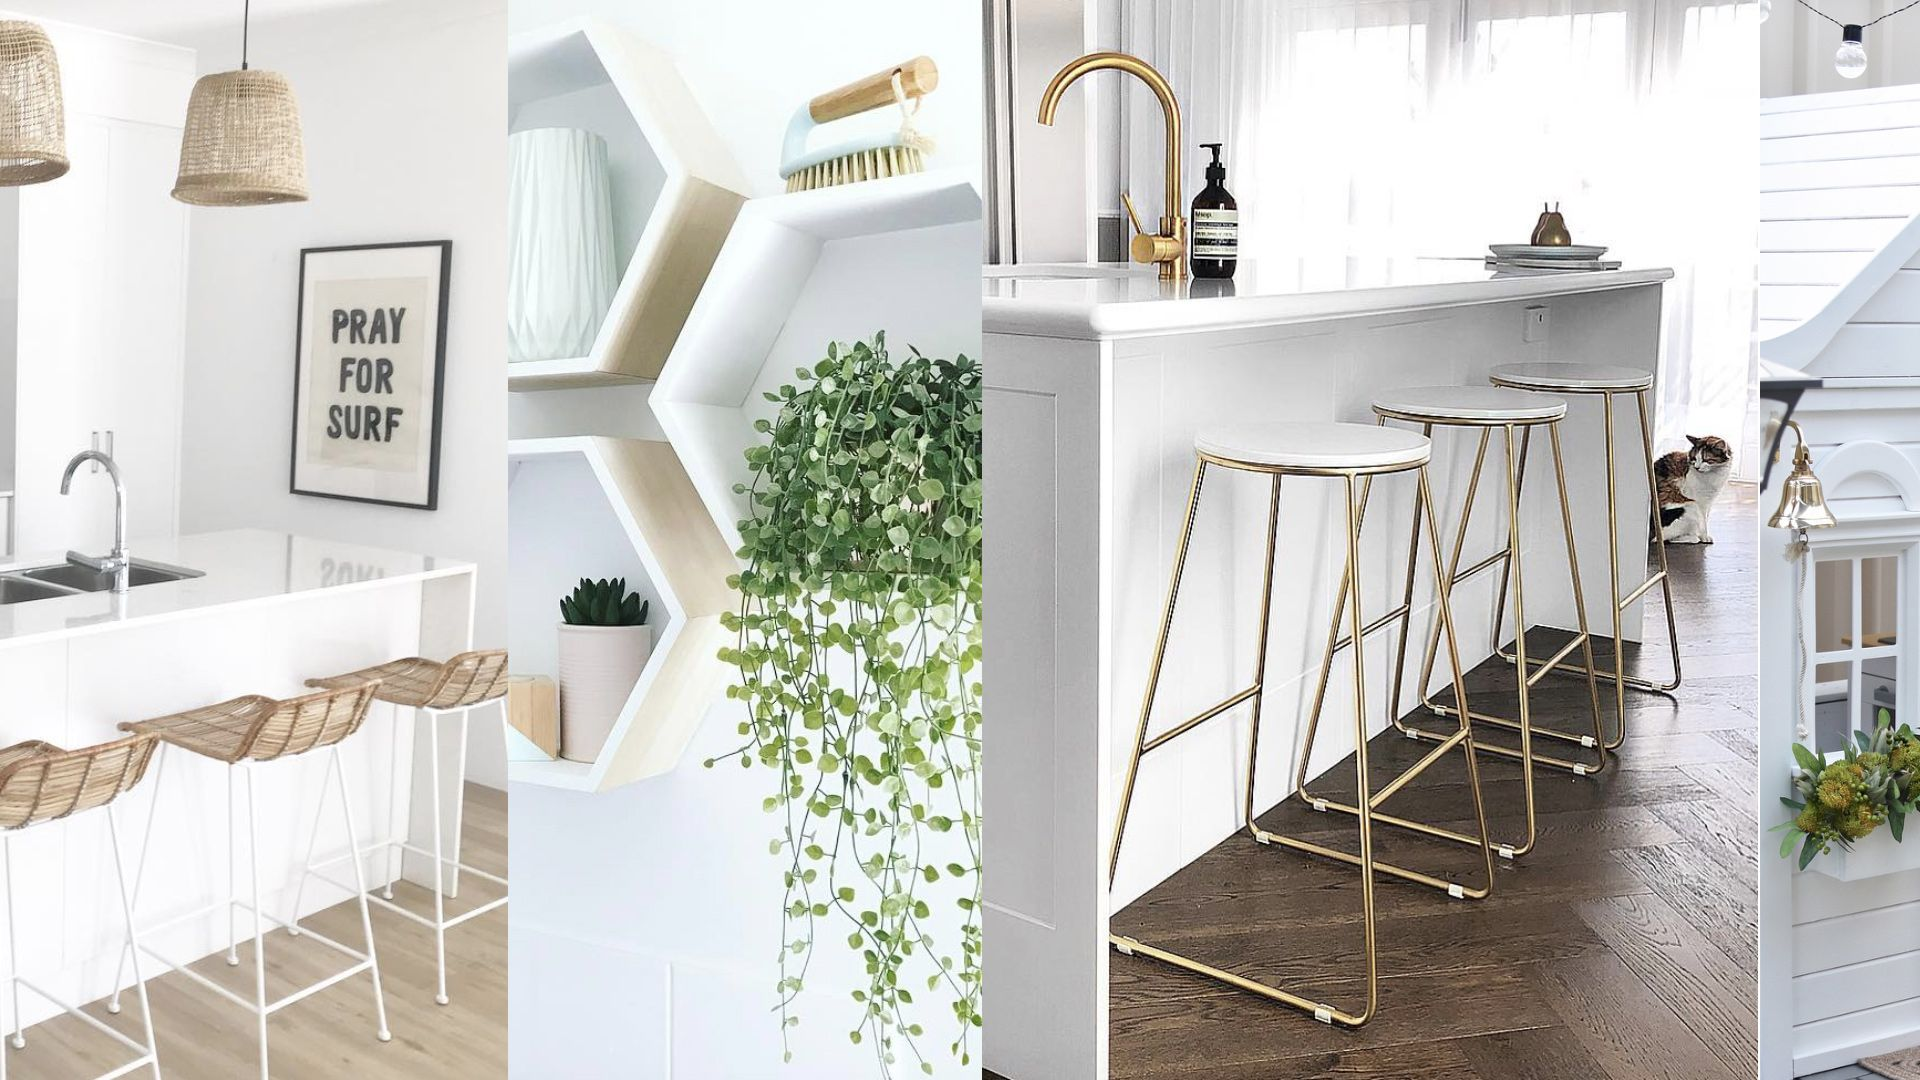 50 best ever kmart hacks on the internet with images white modern kitchen home decor hacks on kitchen ideas kmart id=82566